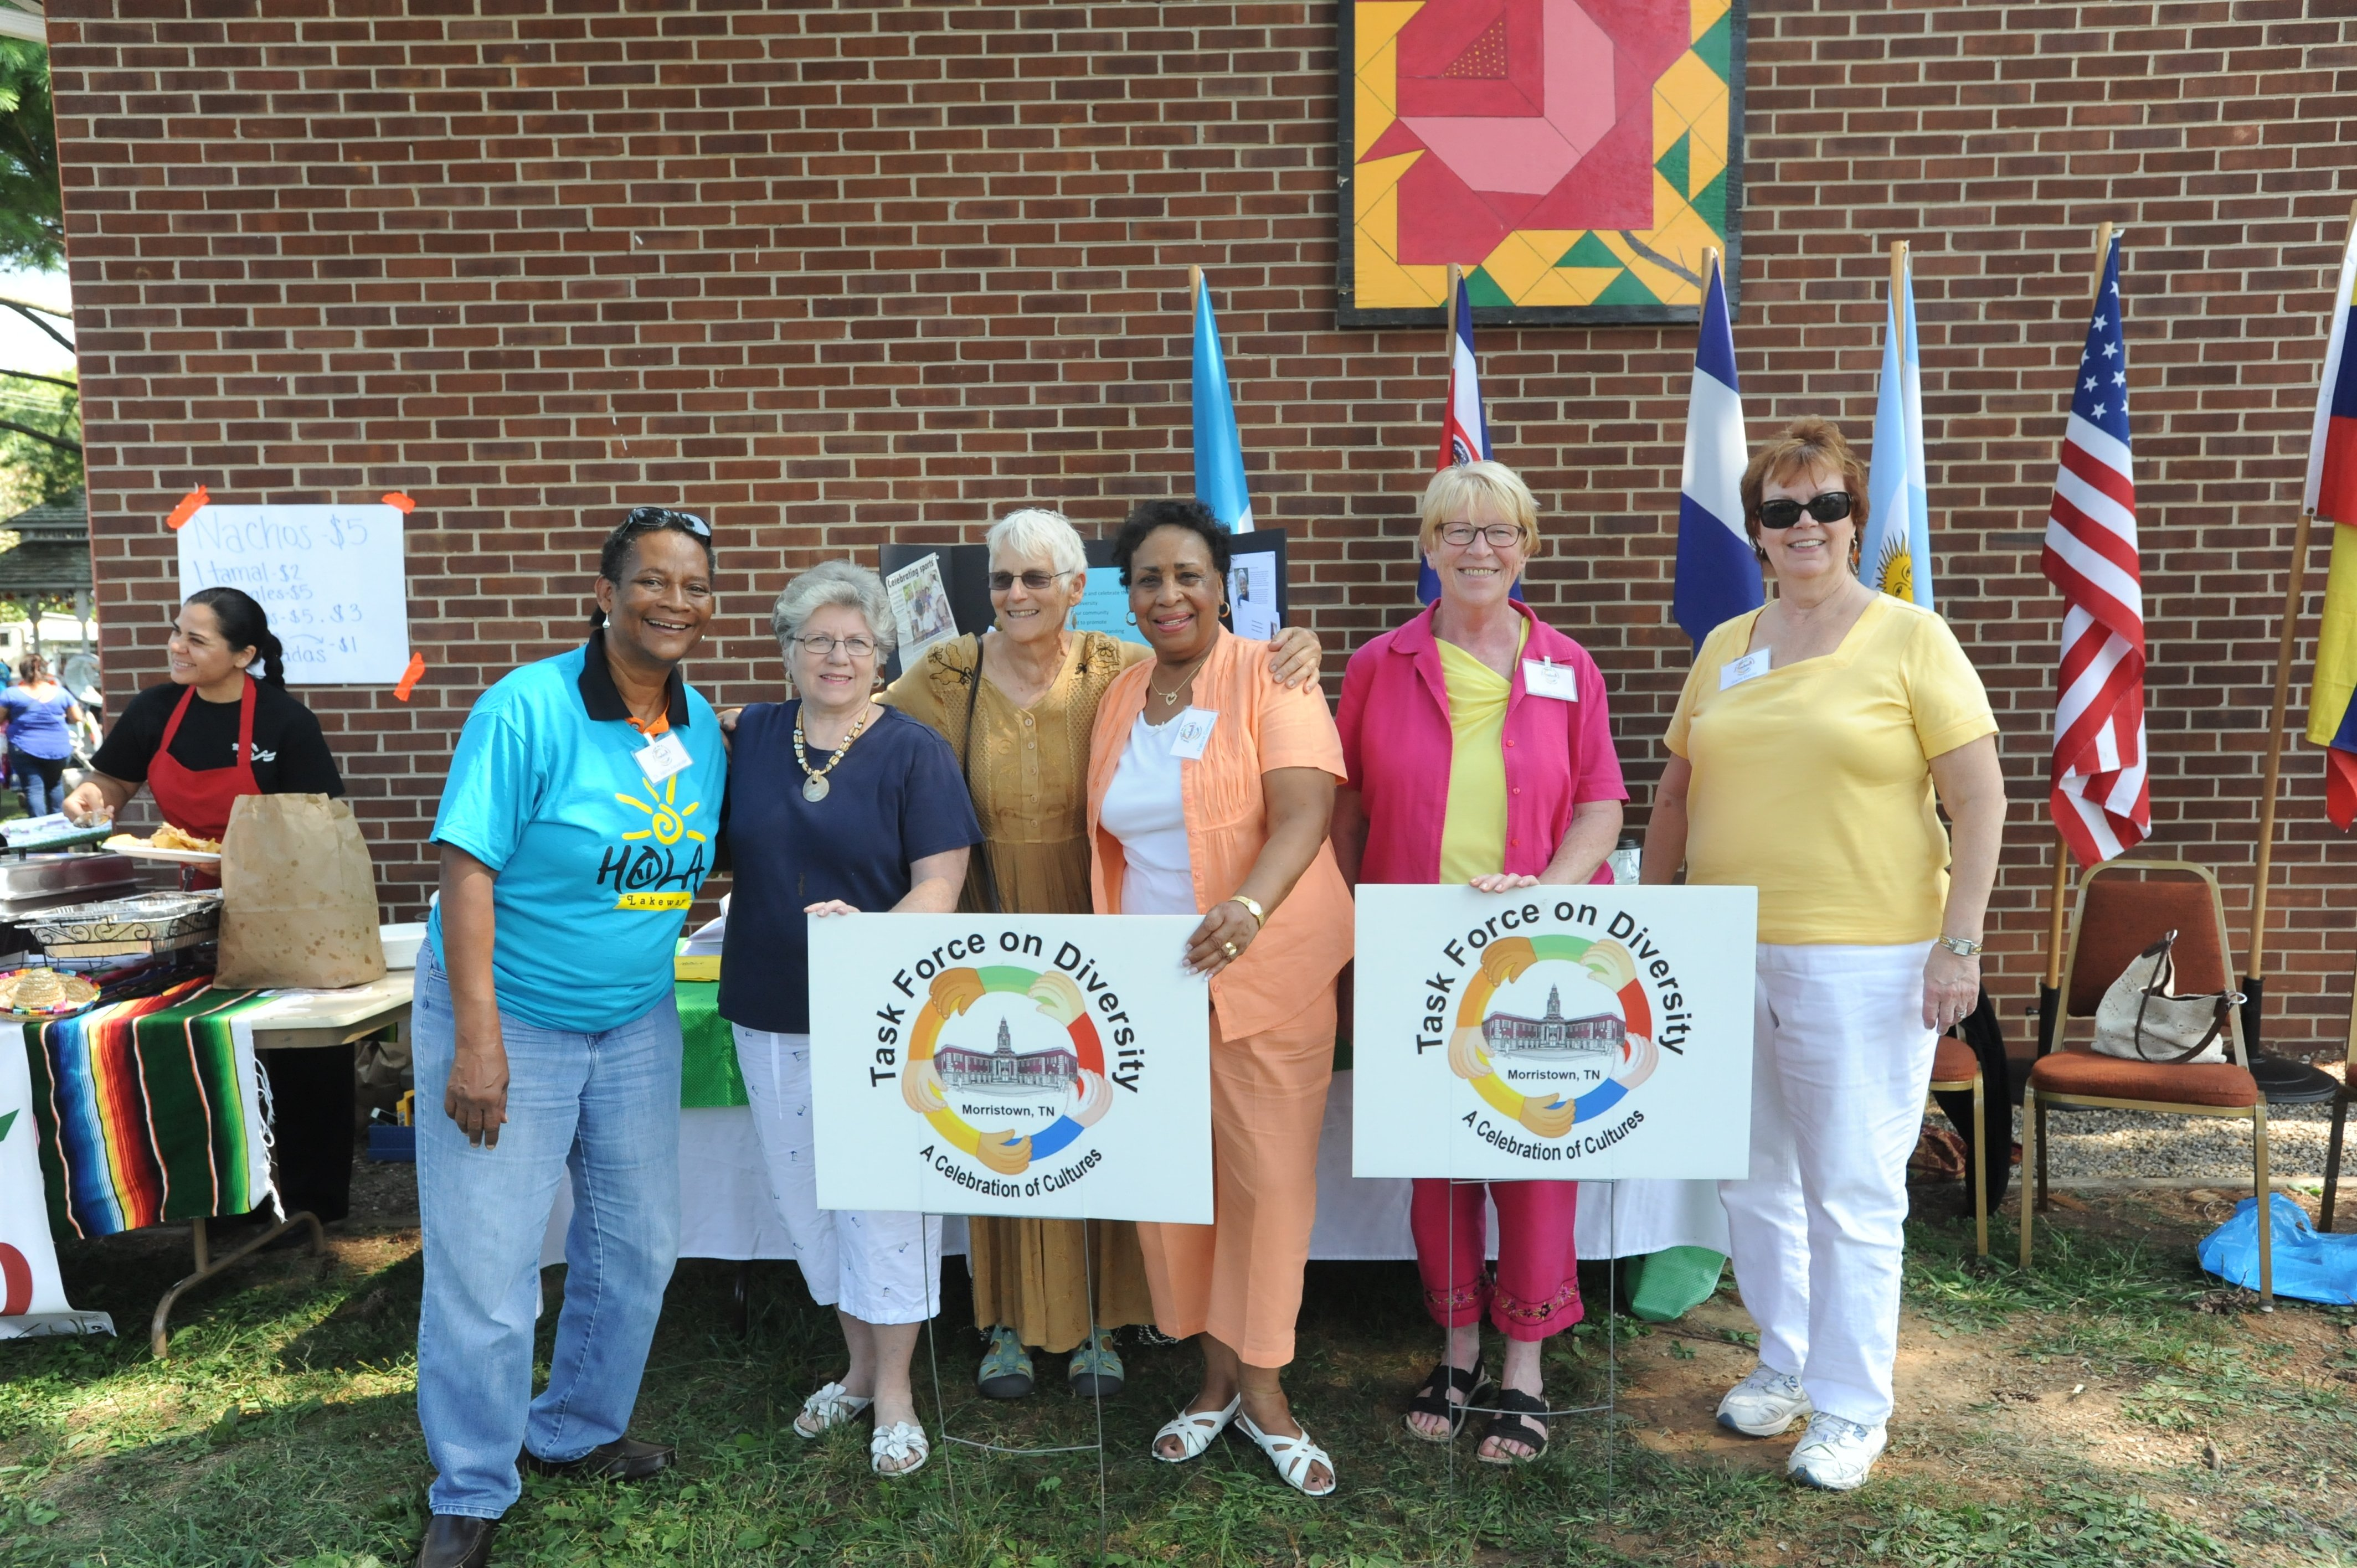 From left to right: Chairperson, Dr. Alpha Alexander; The Rev. Scherry Fouke, Member; Anna Tursich, member; Patrice Conway, Vice-Chair; Pauletta Thomas, member; Sami Barile, Founder and Sec/Treas.